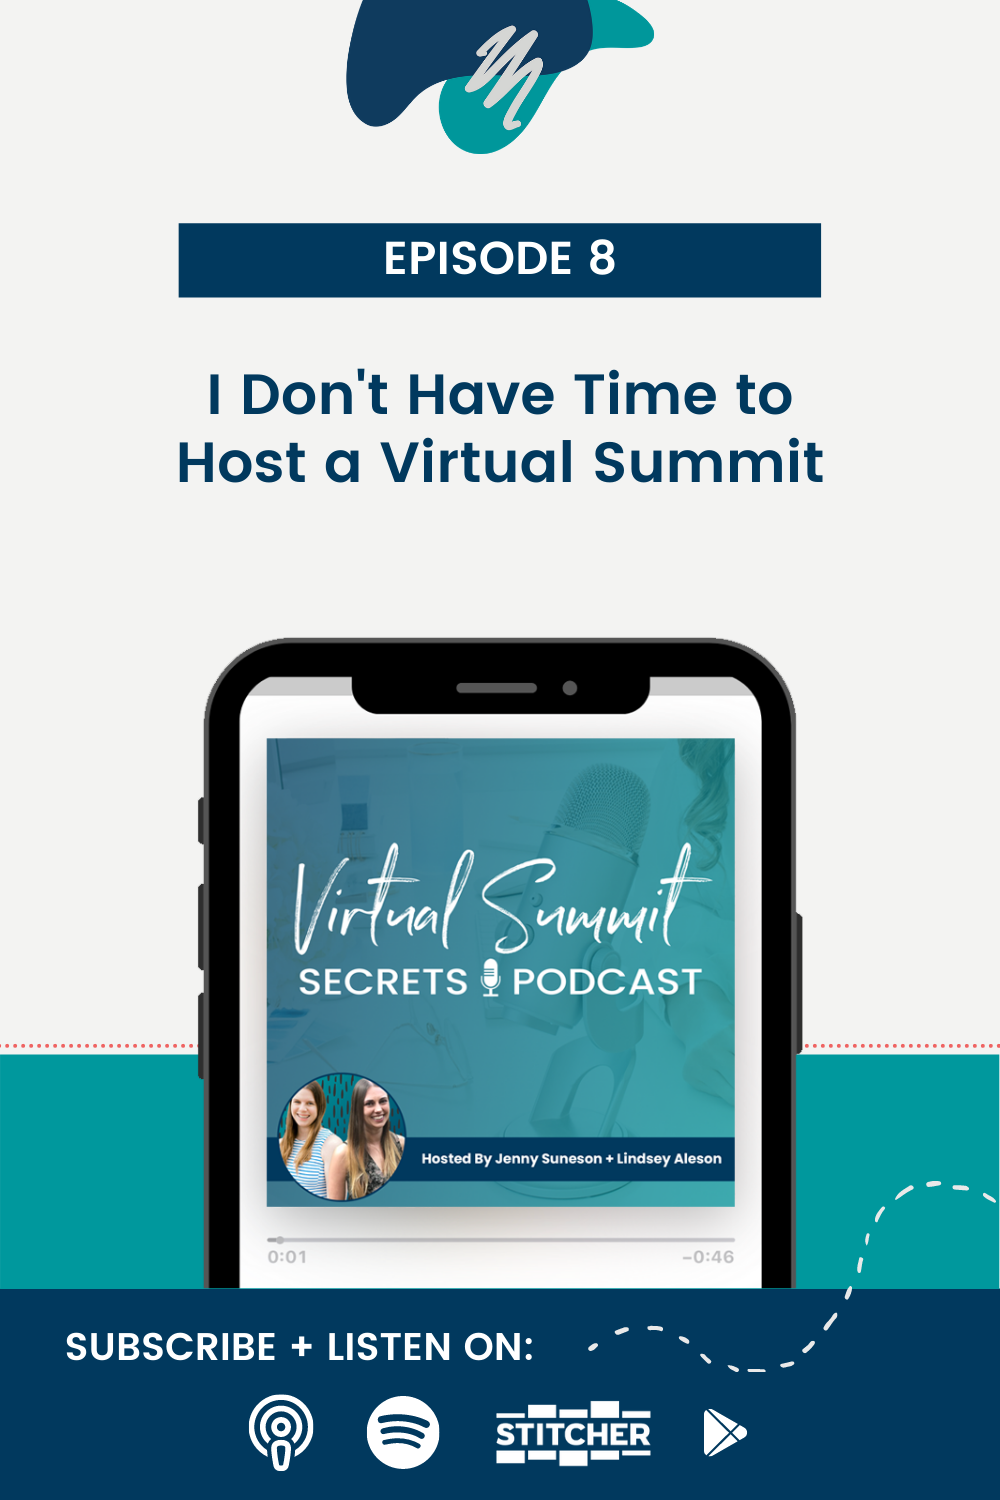 Episode 8 - I Don't Have Time to Host a Virtual Summit